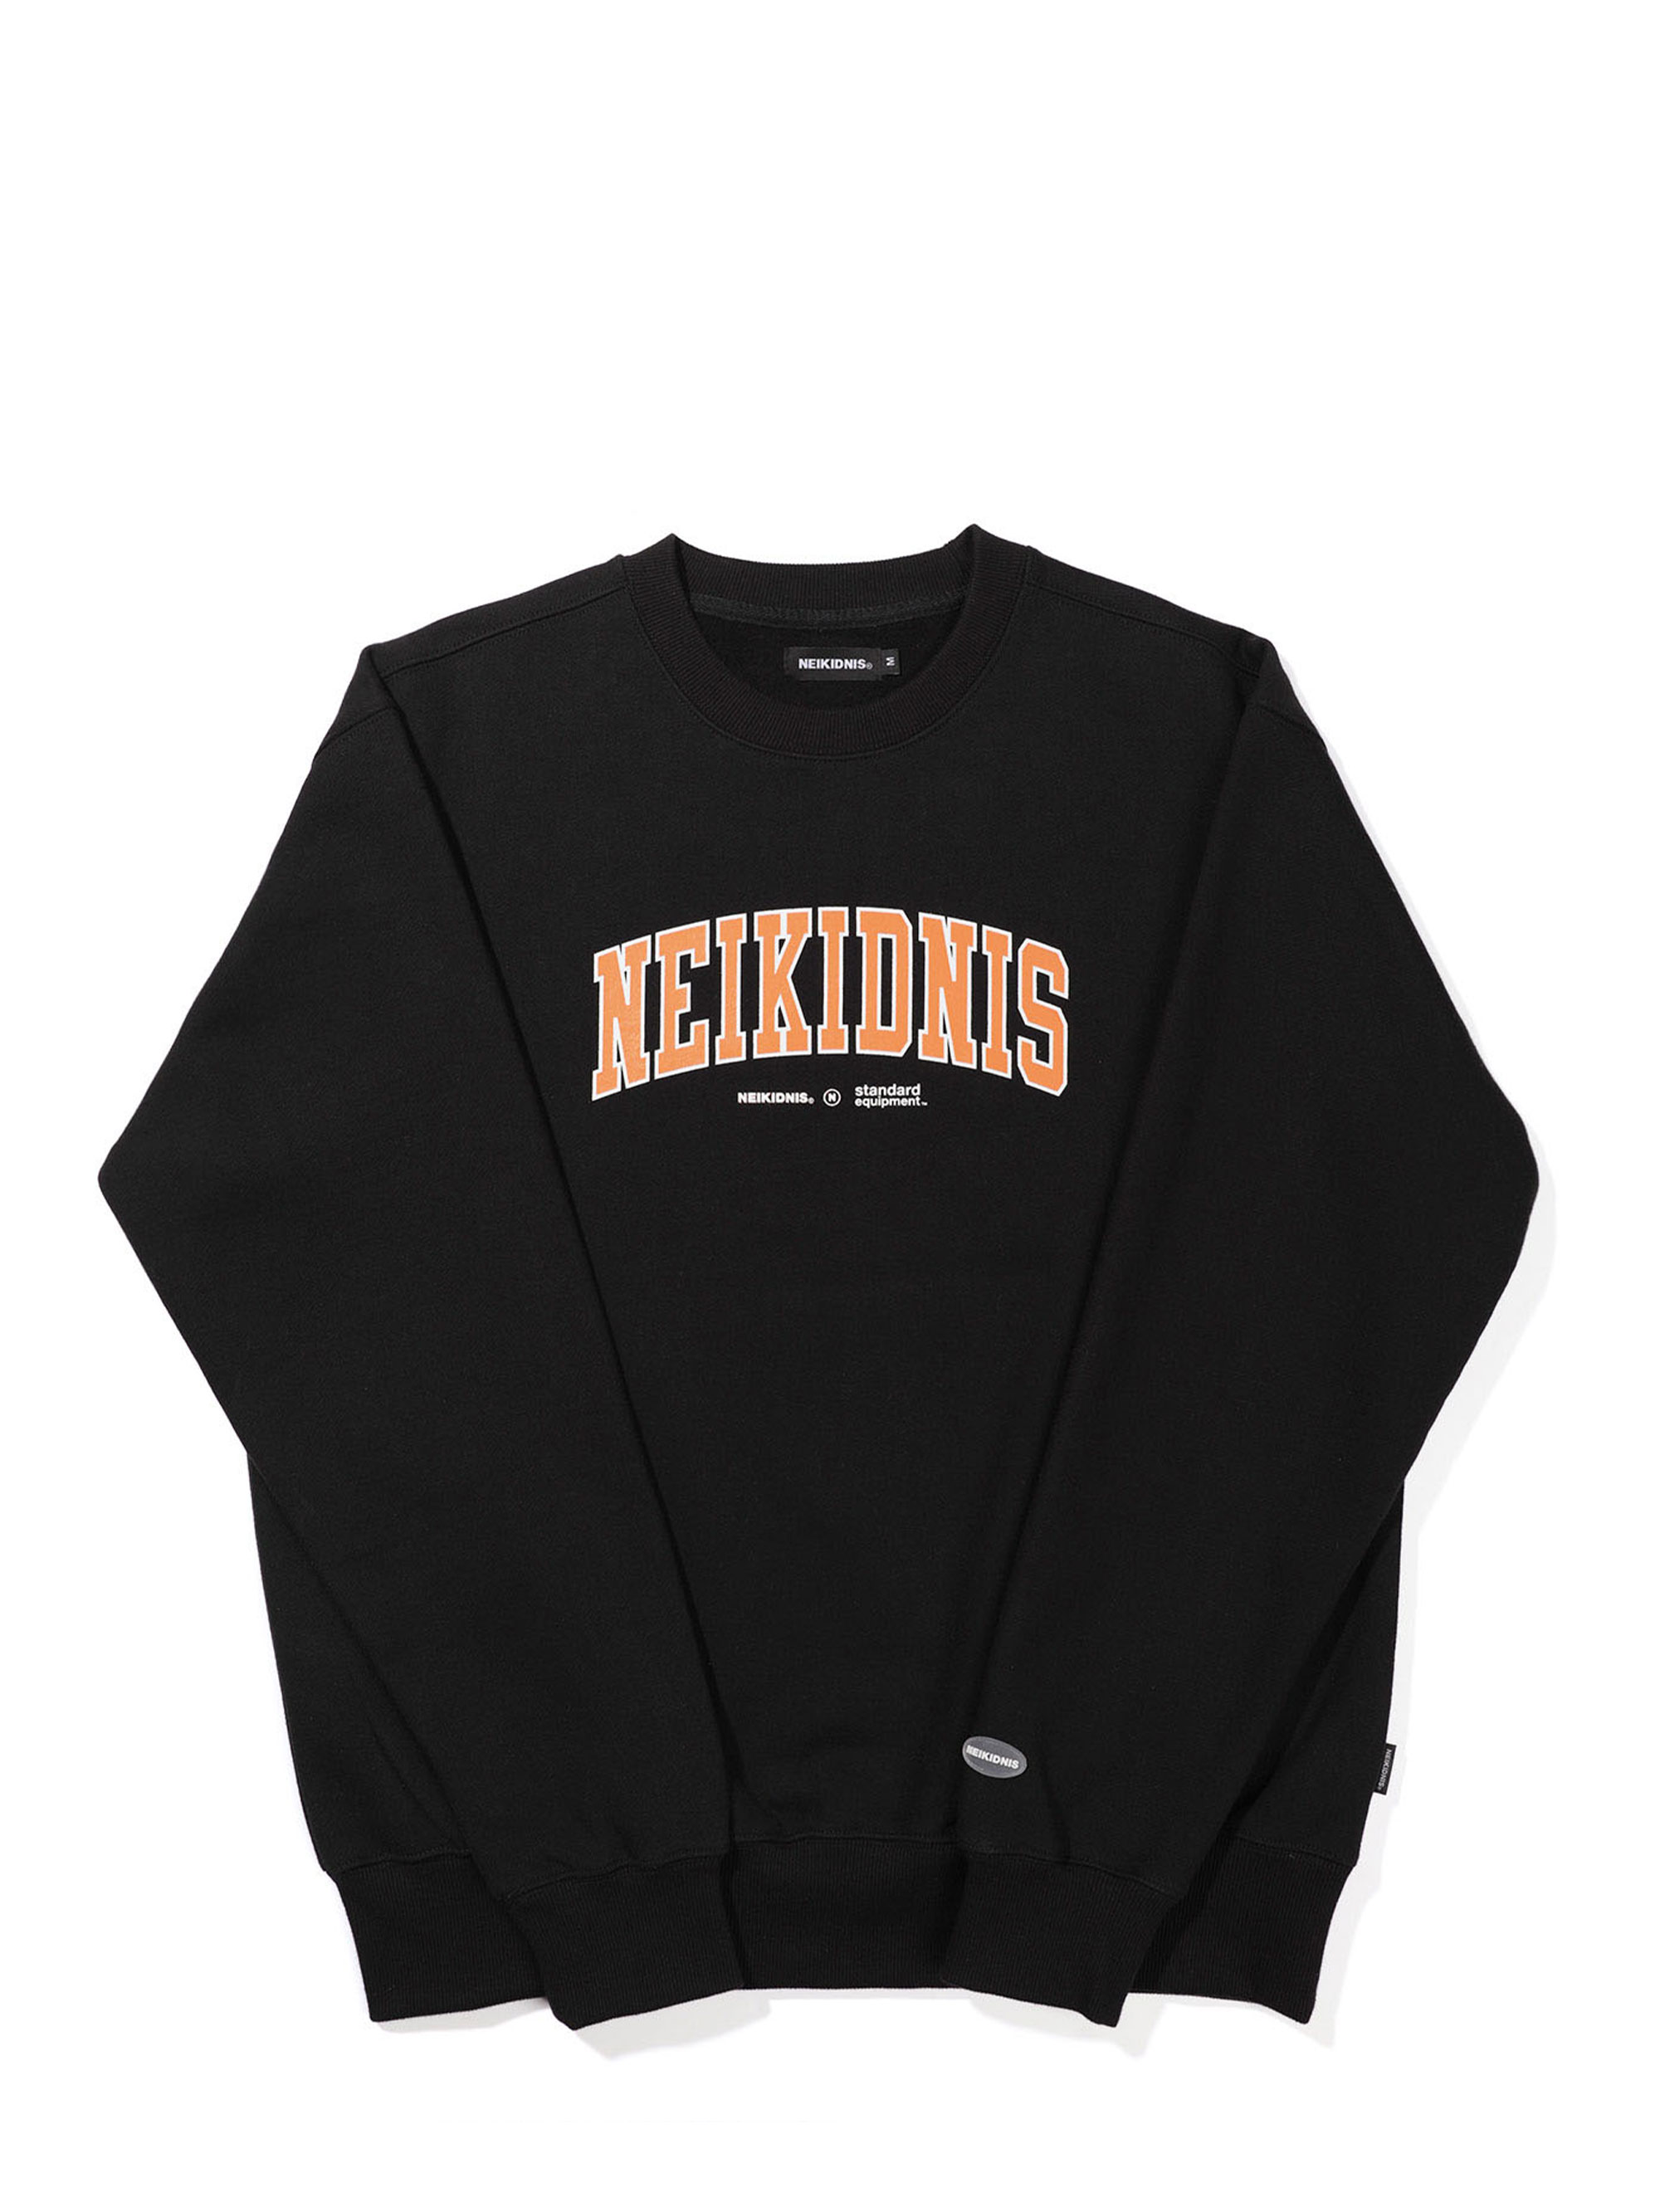 CURVED LOGO SWEAT SHIRT / BLACK